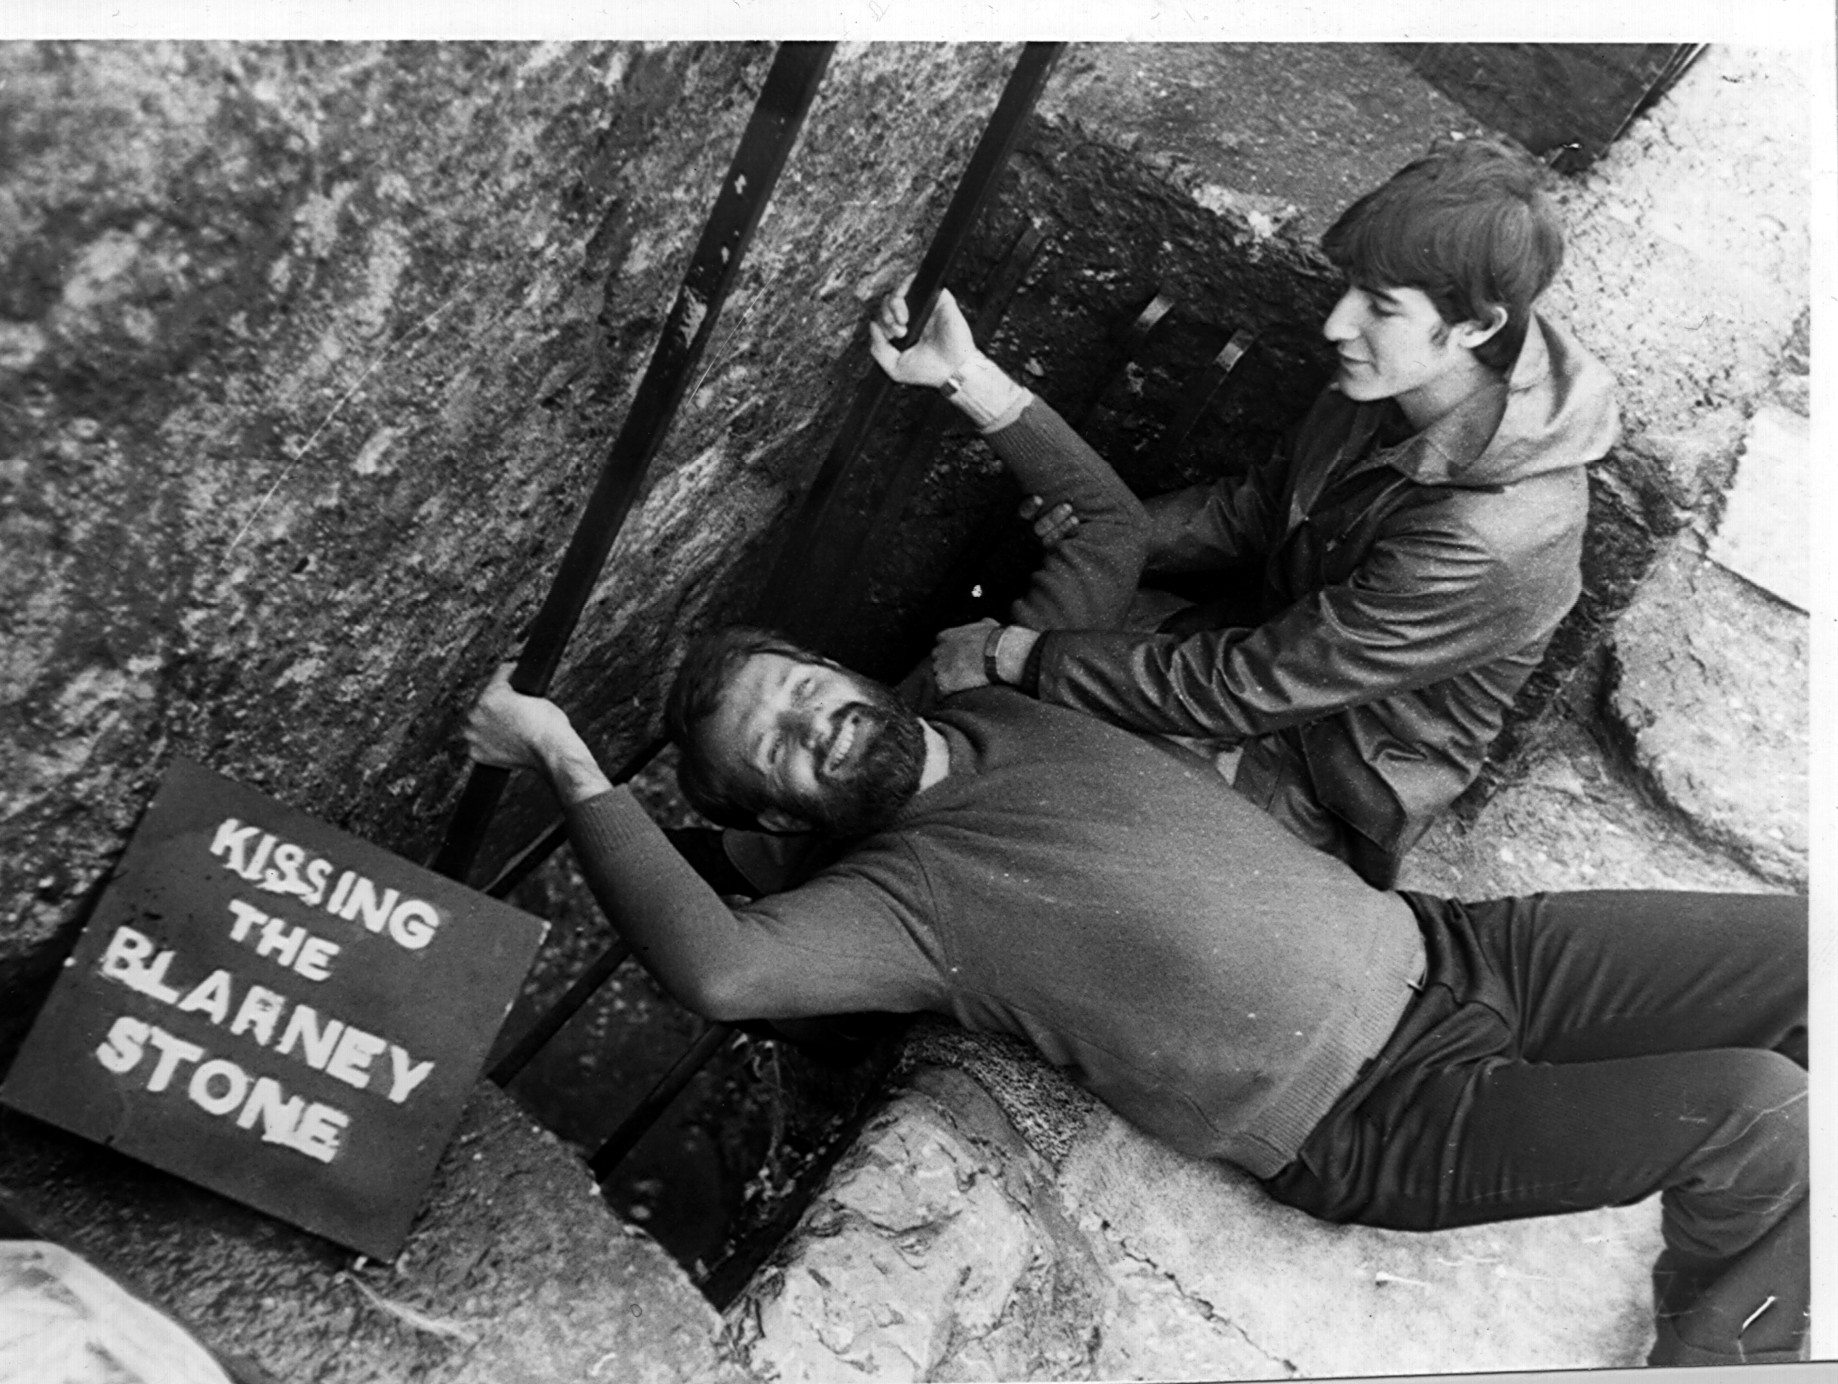 ANDRE JUTE KISSING THE BLARNEY STONE